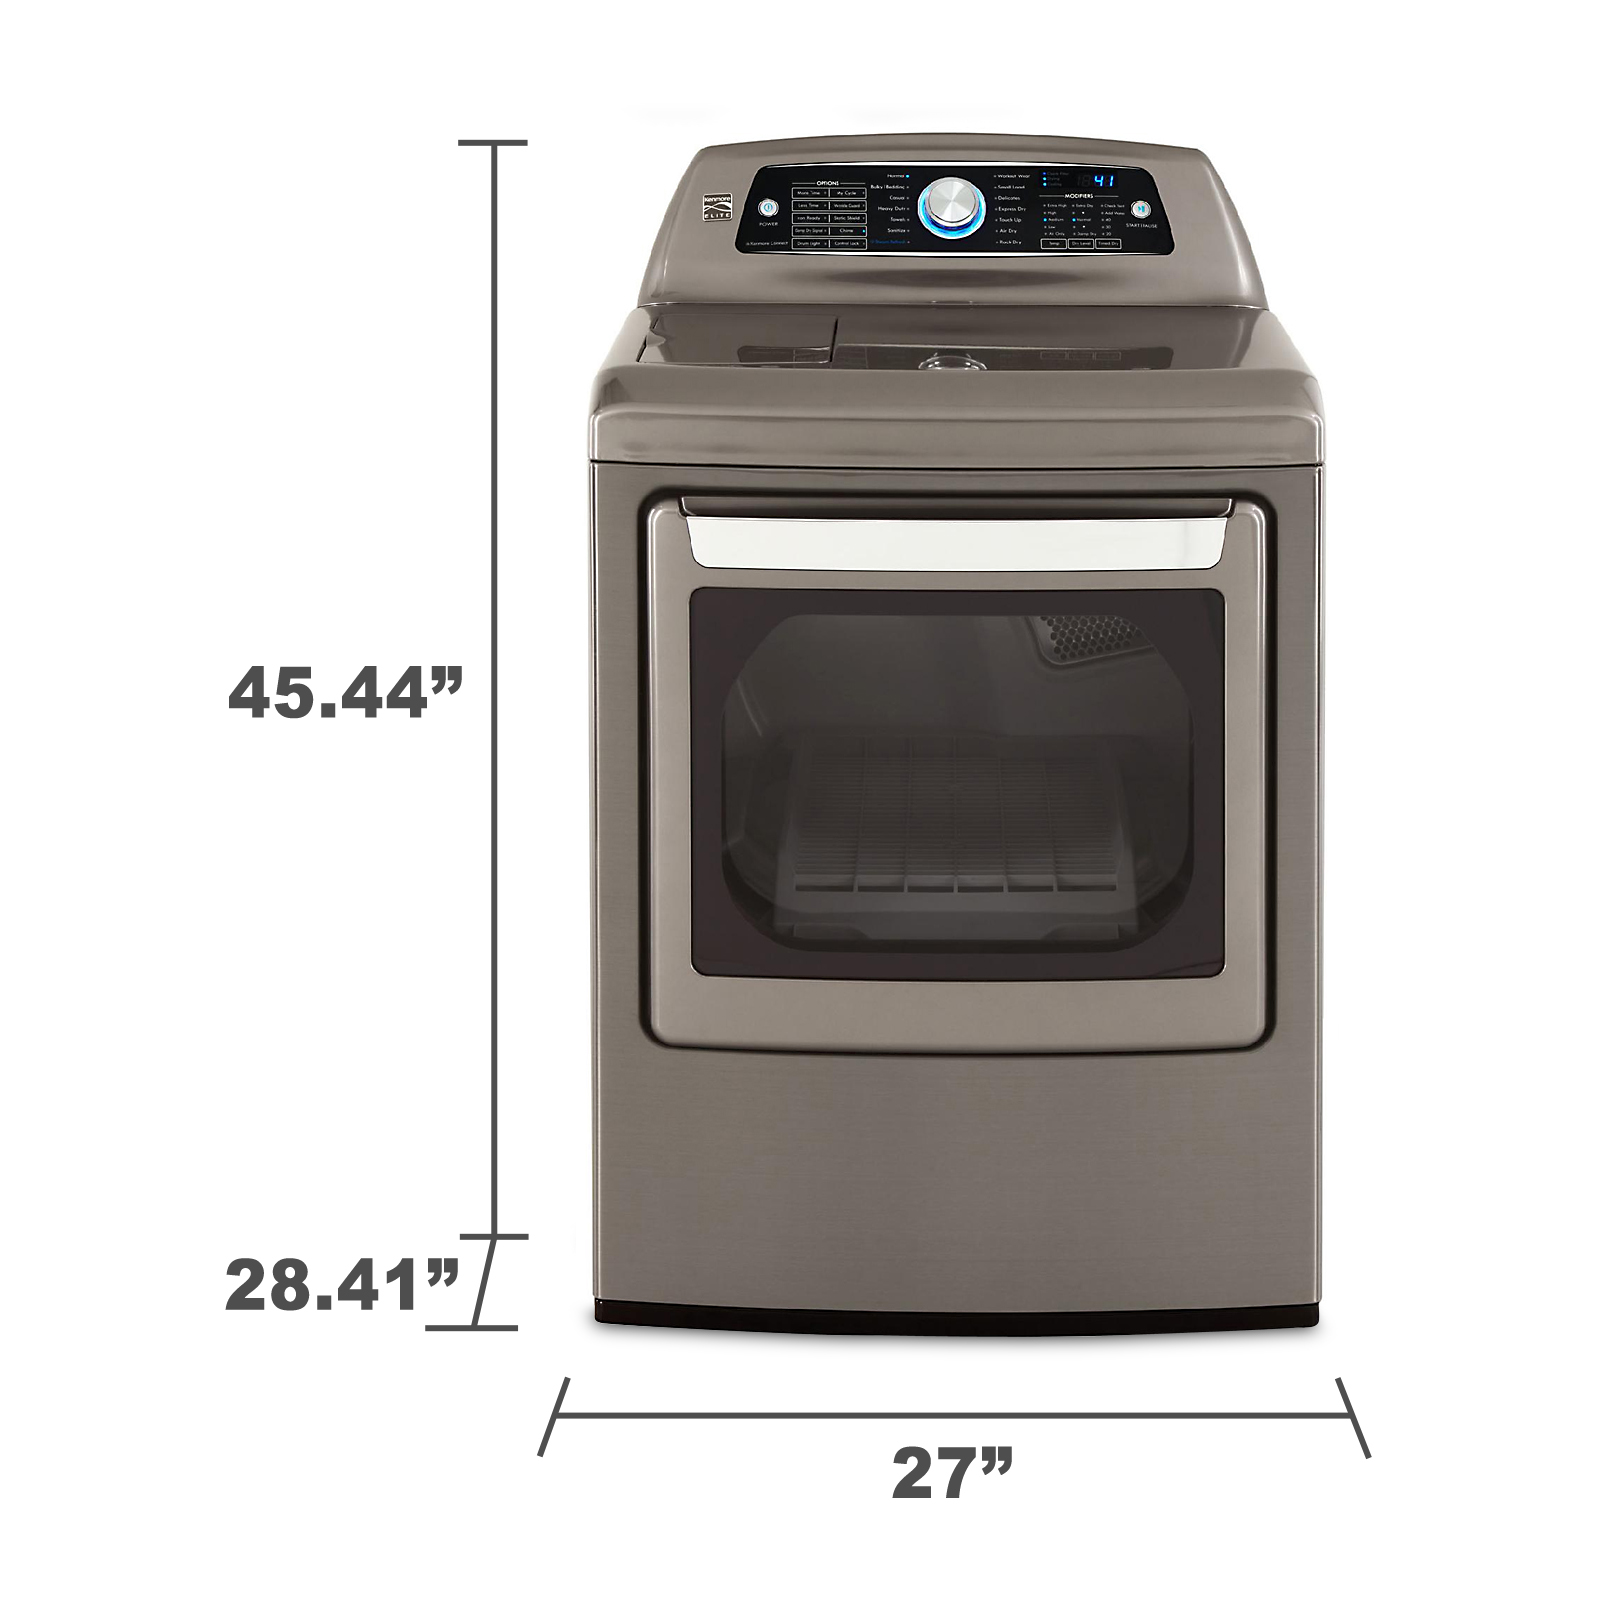 Kenmore Elite 7.3 cu. ft. Gas Dryer w/ Steam - Metallic Gray